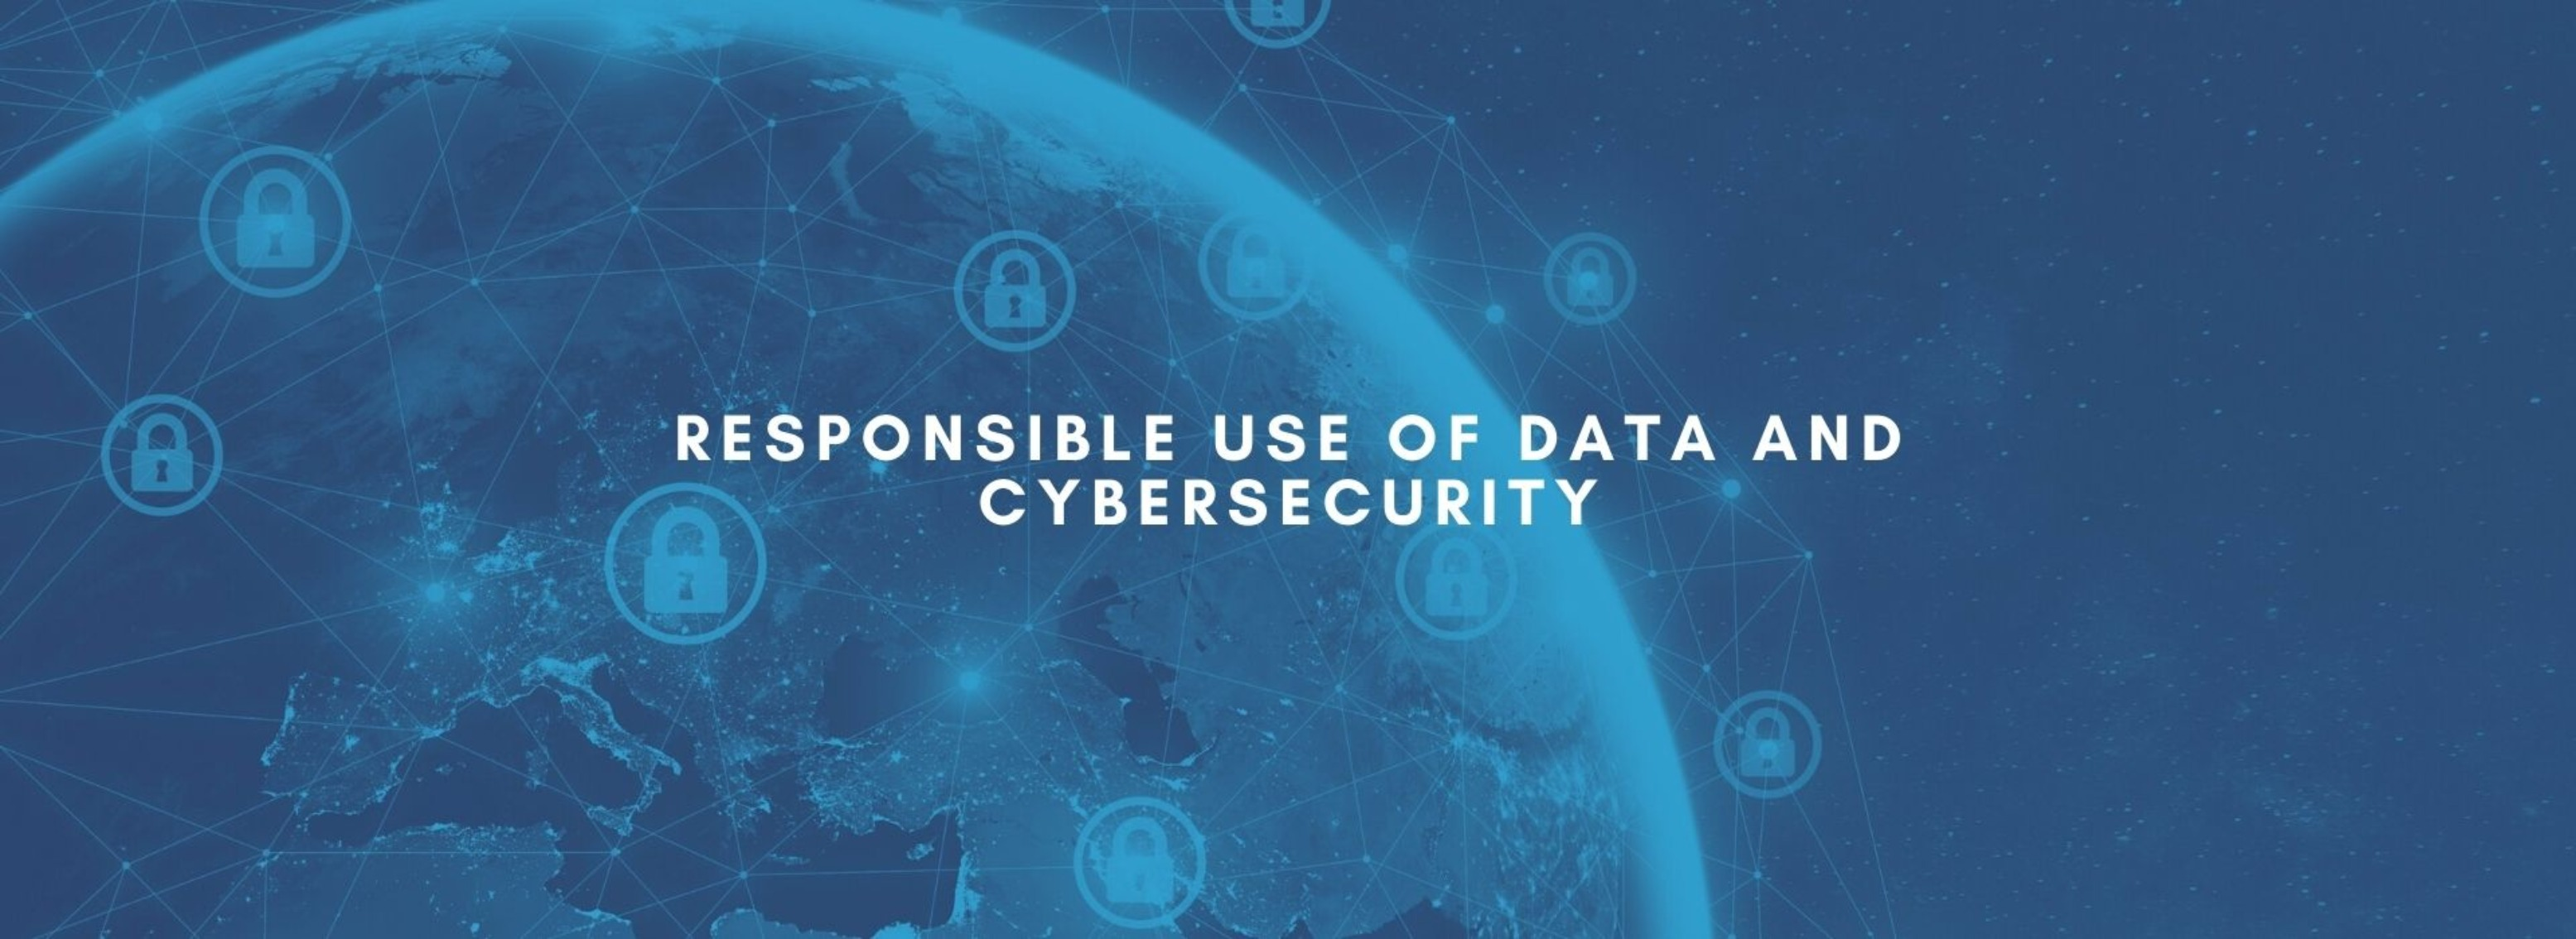 BP | Responsible Use of Data and Cybersecurity | June 1st, 2021